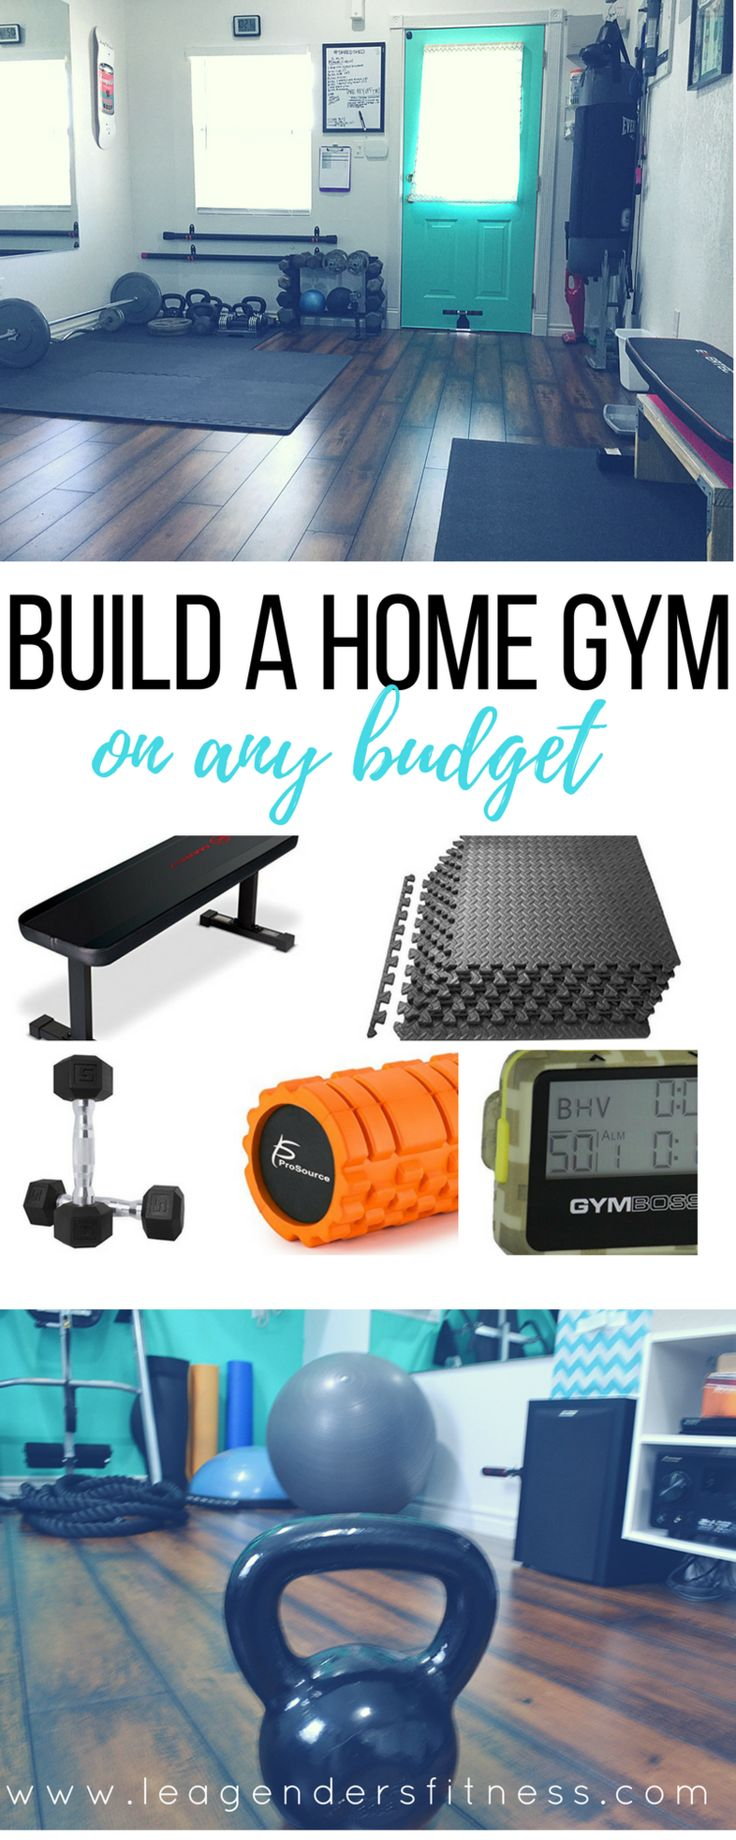 I workout at home in the #shredshed but it is not your typical home gym. We  went all-out and built our ideal gym environment in a separate building on  our property. Since I am a trainer, it is part home gym, part private  studio. I can train clients in a studio environment without the monthly  overhead. For me, spending more on building my own gym made sense.  (Although I do miss the pool and sauna at the big box gym.)   There are a lot of benefits of a home gym. You eliminate the commute…